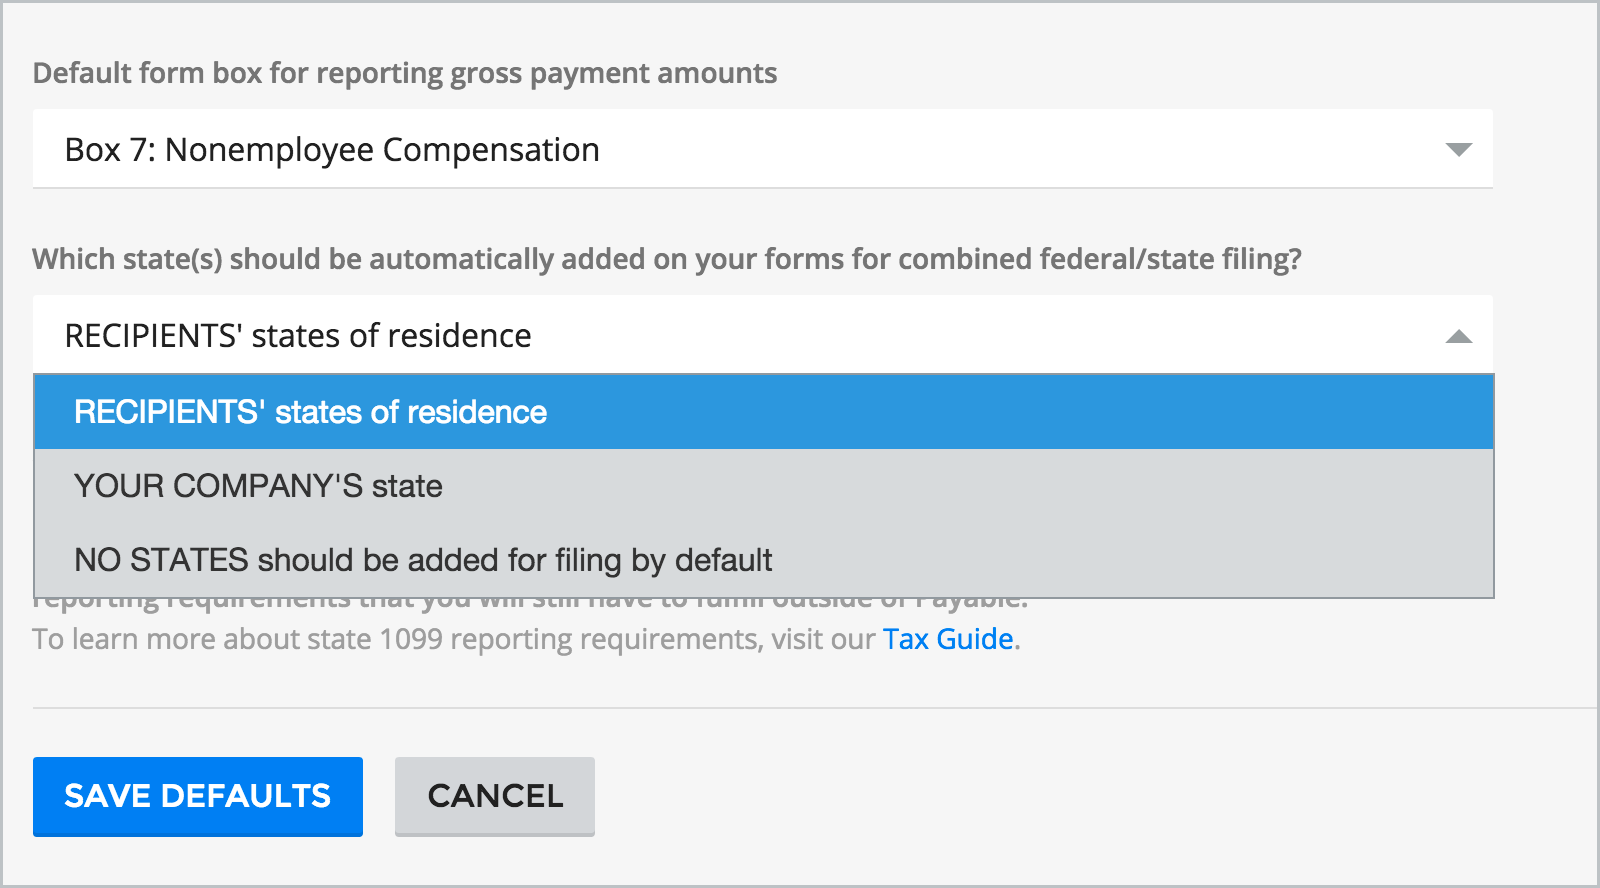 Payable Tax - Recipient's State of Residence